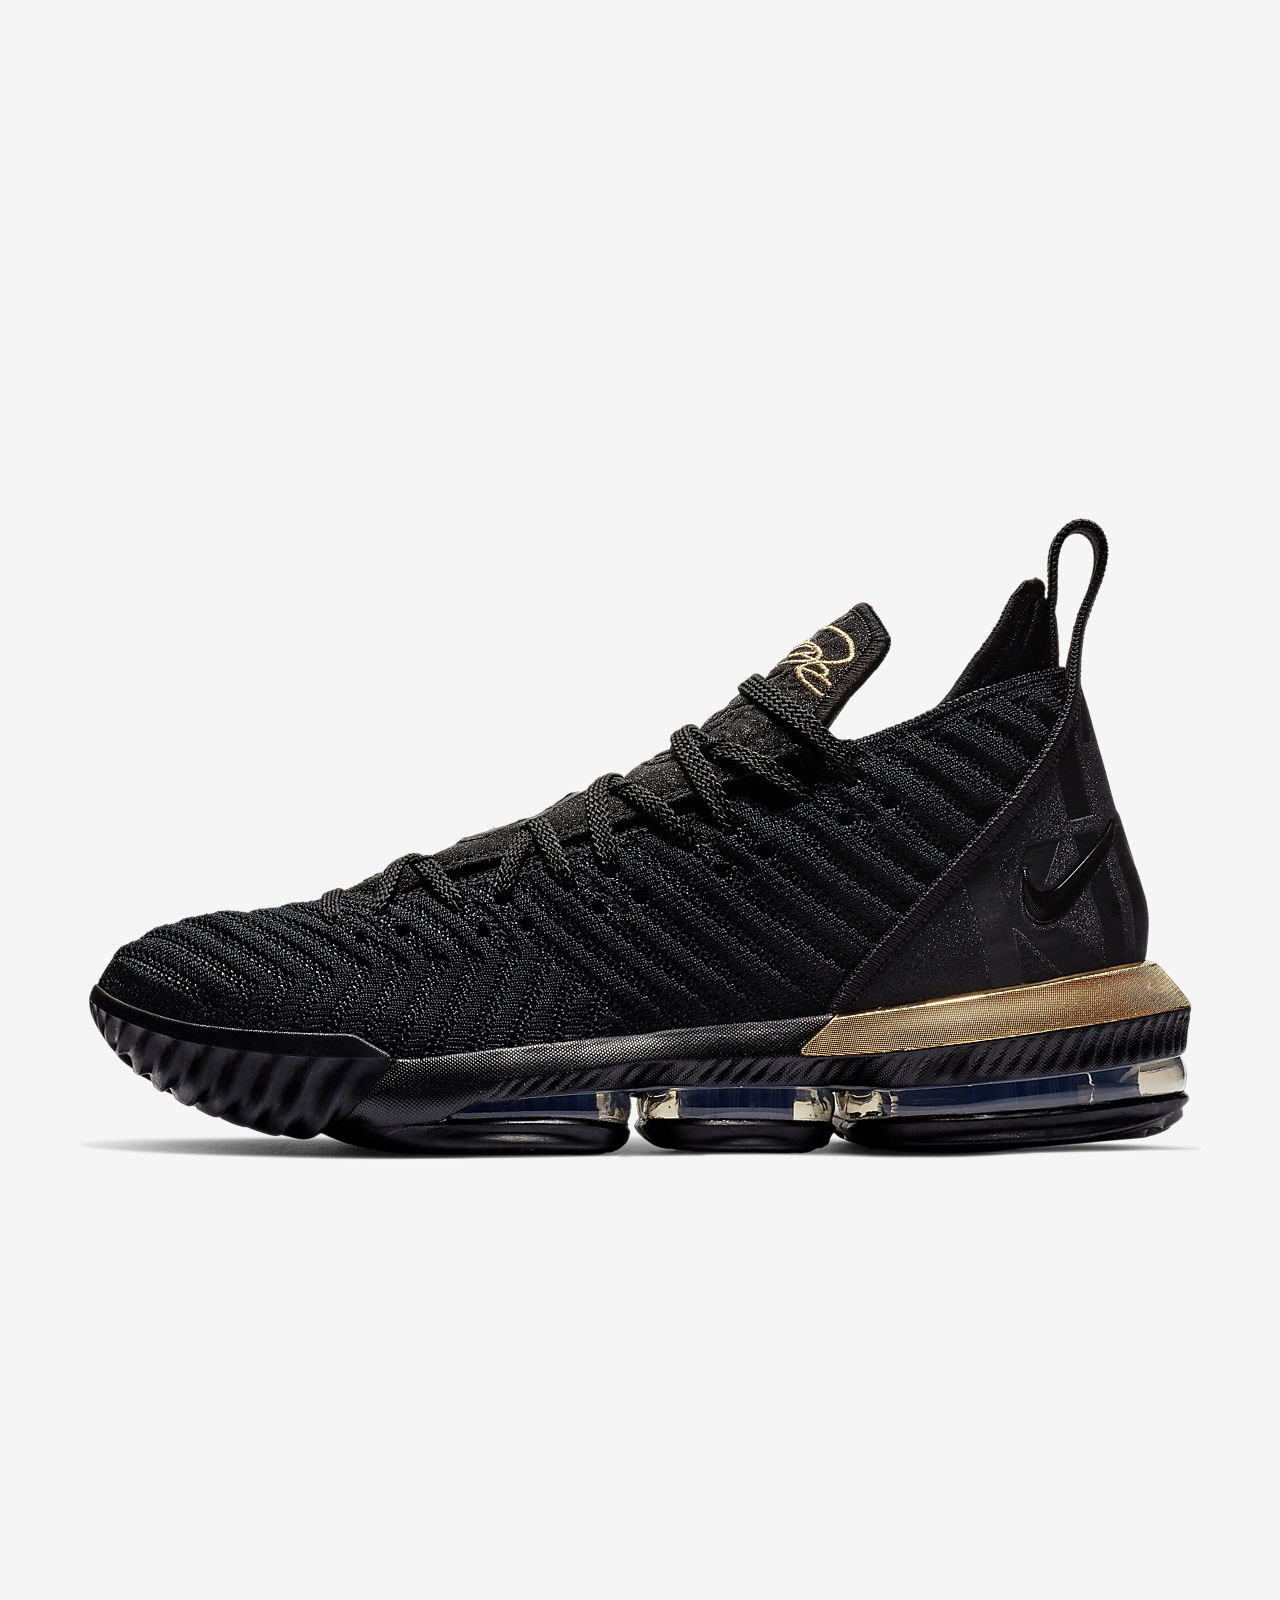 1854bf7ef19 Low Resolution Παπούτσι μπάσκετ LeBron 16 Παπούτσι μπάσκετ LeBron 16